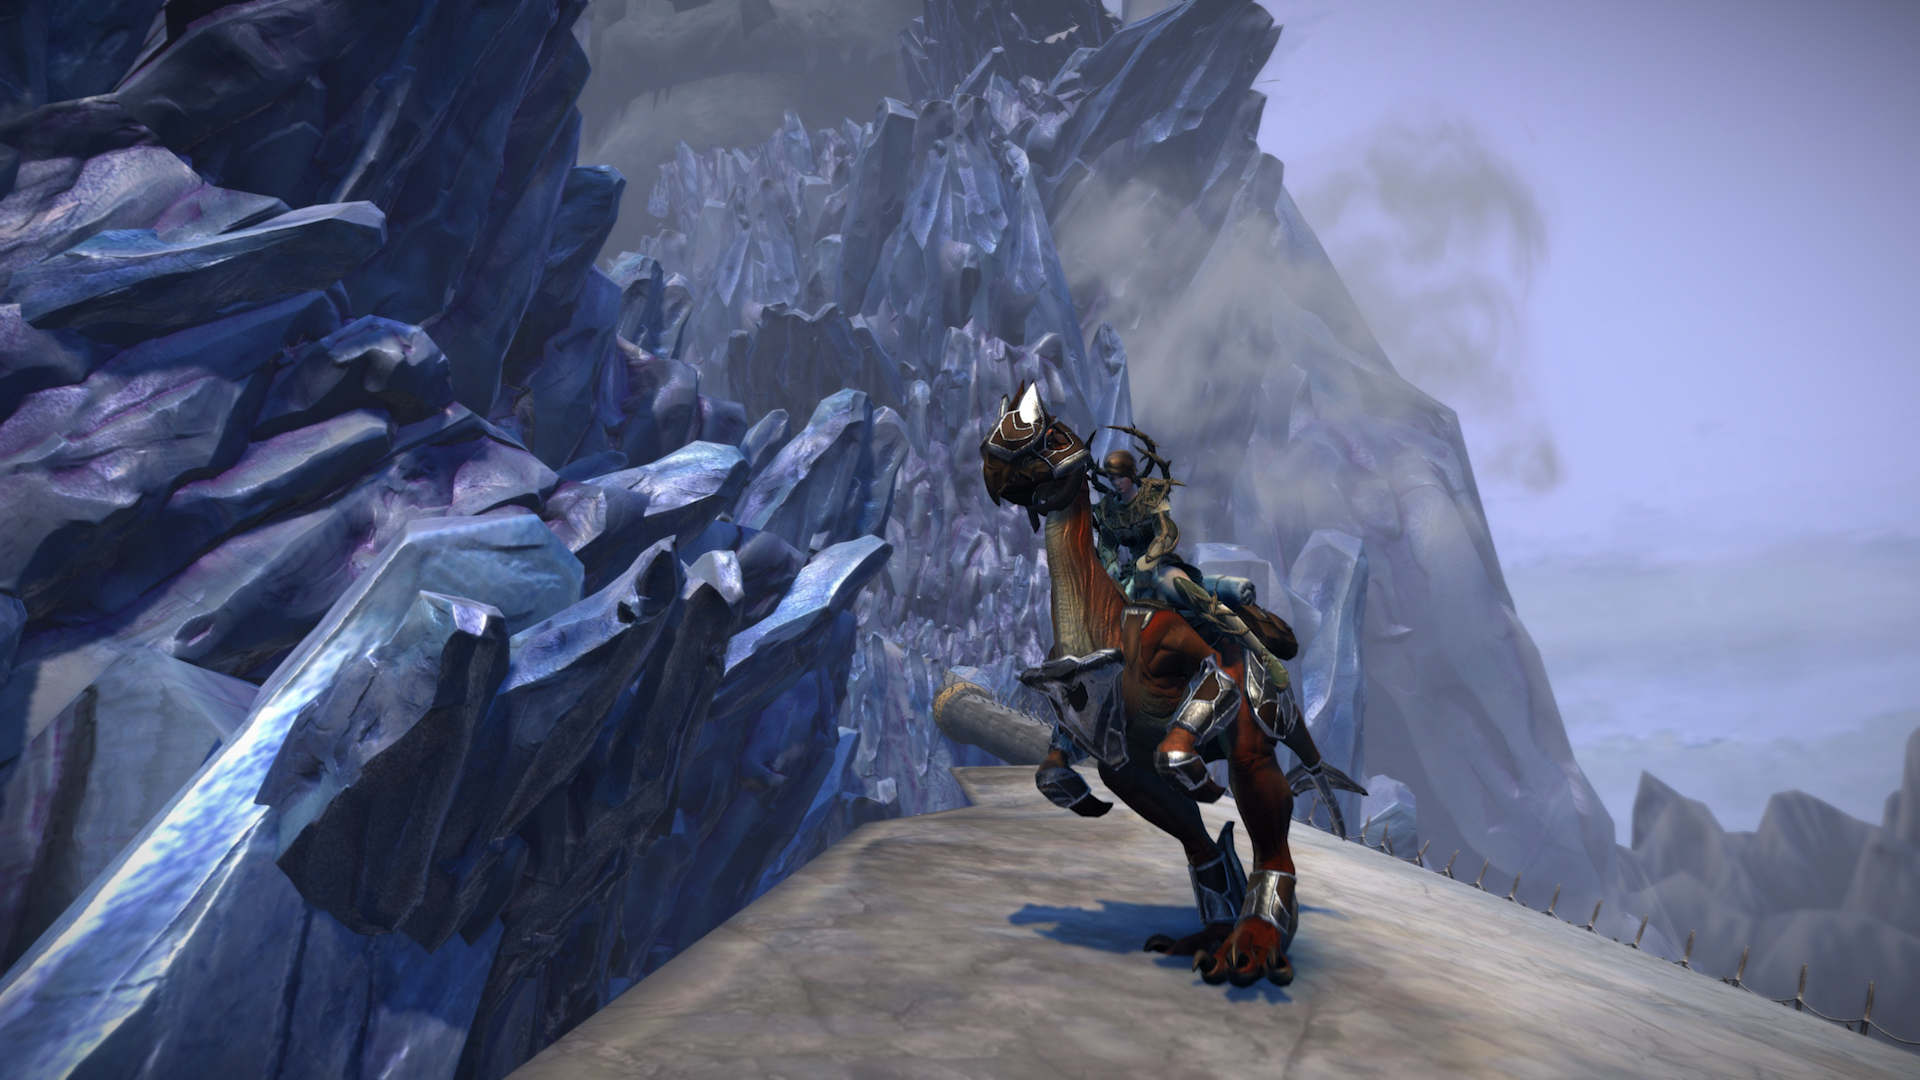 neverwinter fire giant - photo #43